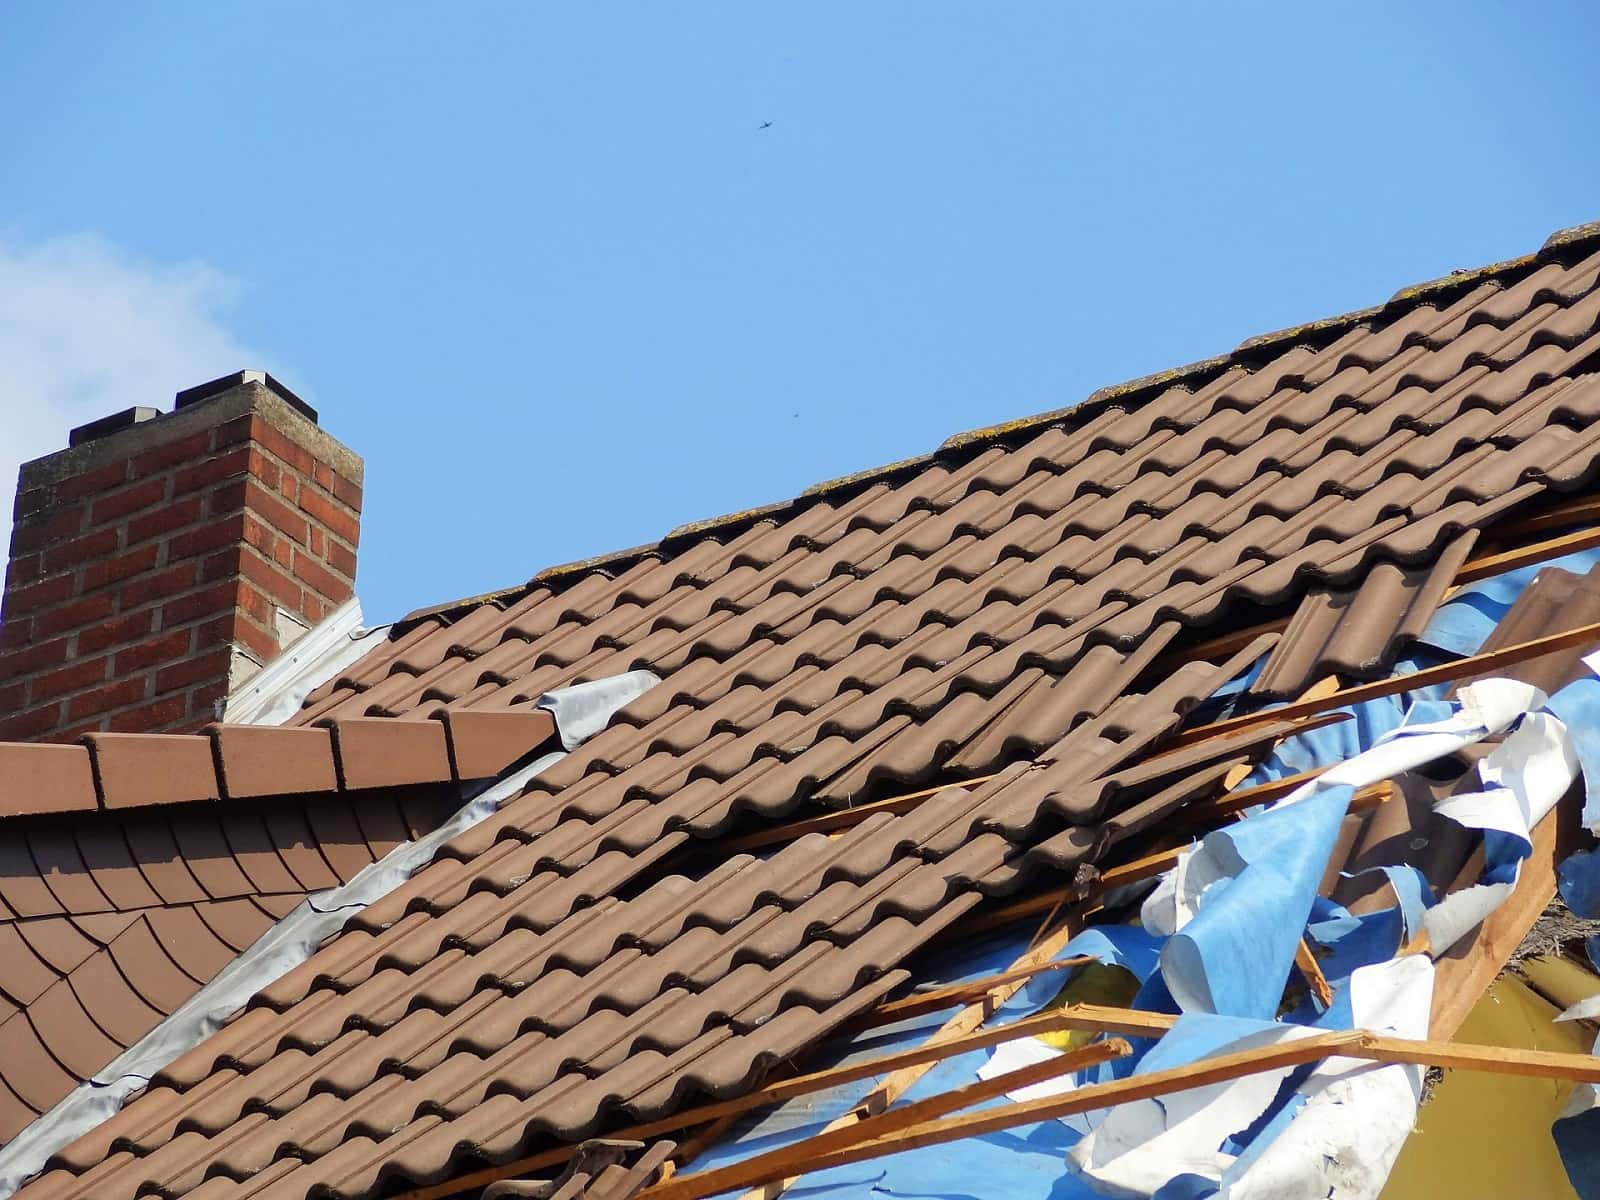 4 Signs That It's Time To Replace Your Roof. Old ceramic roof tiles and partly dilapidated covering